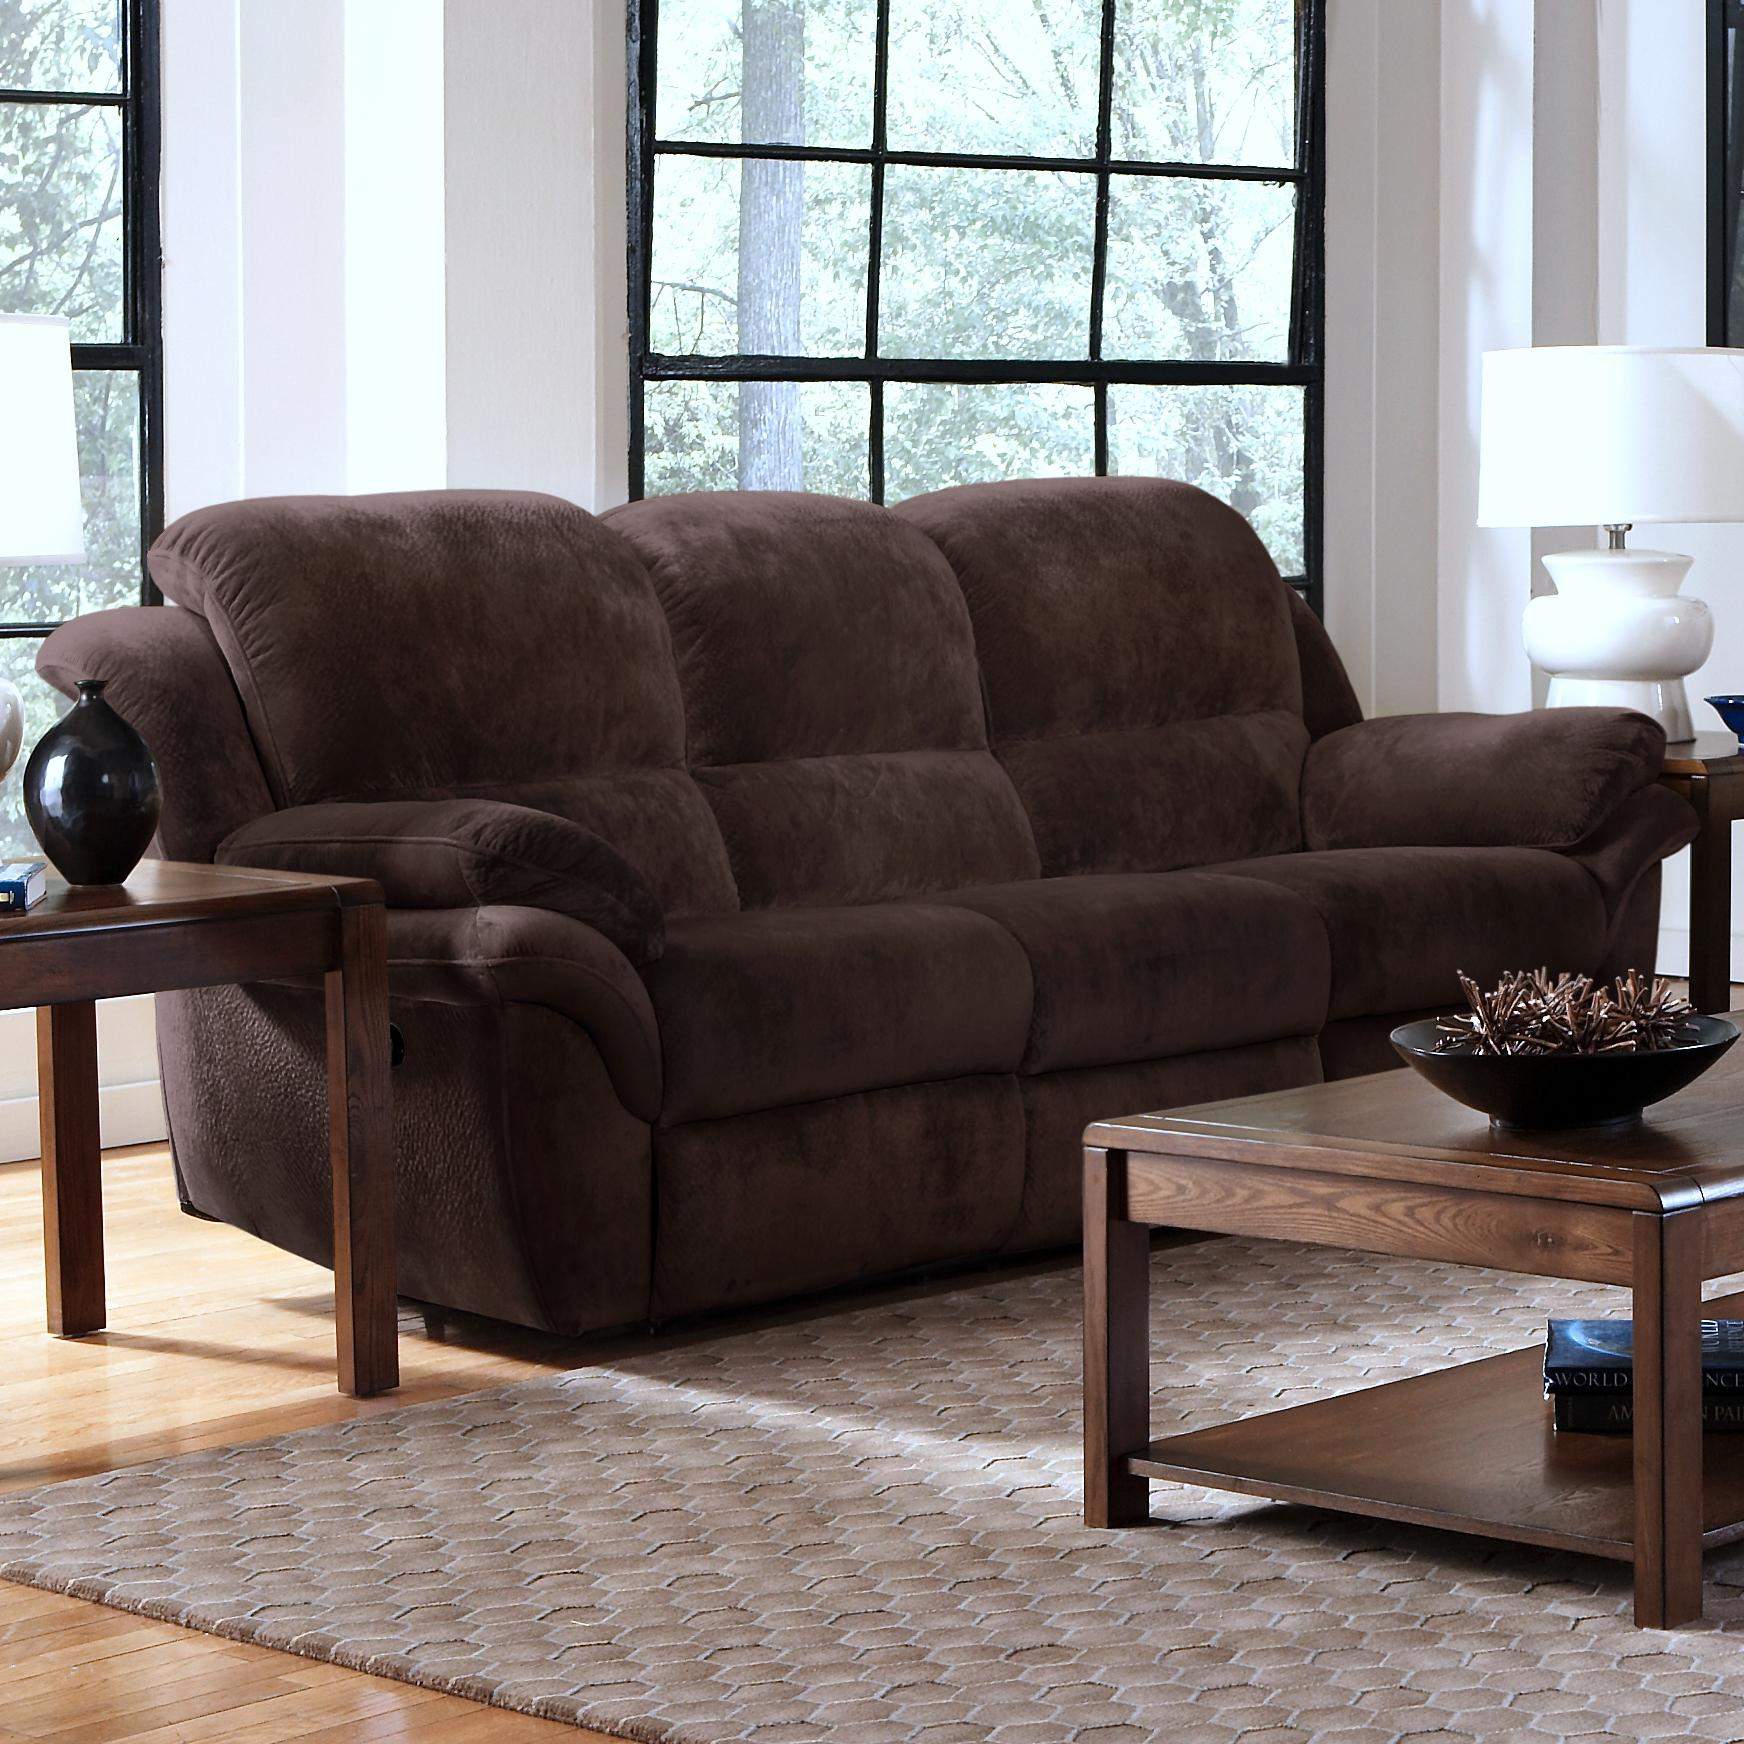 New classic pebble dual recliner motion sofa furniture for Home furniture store rochester mn